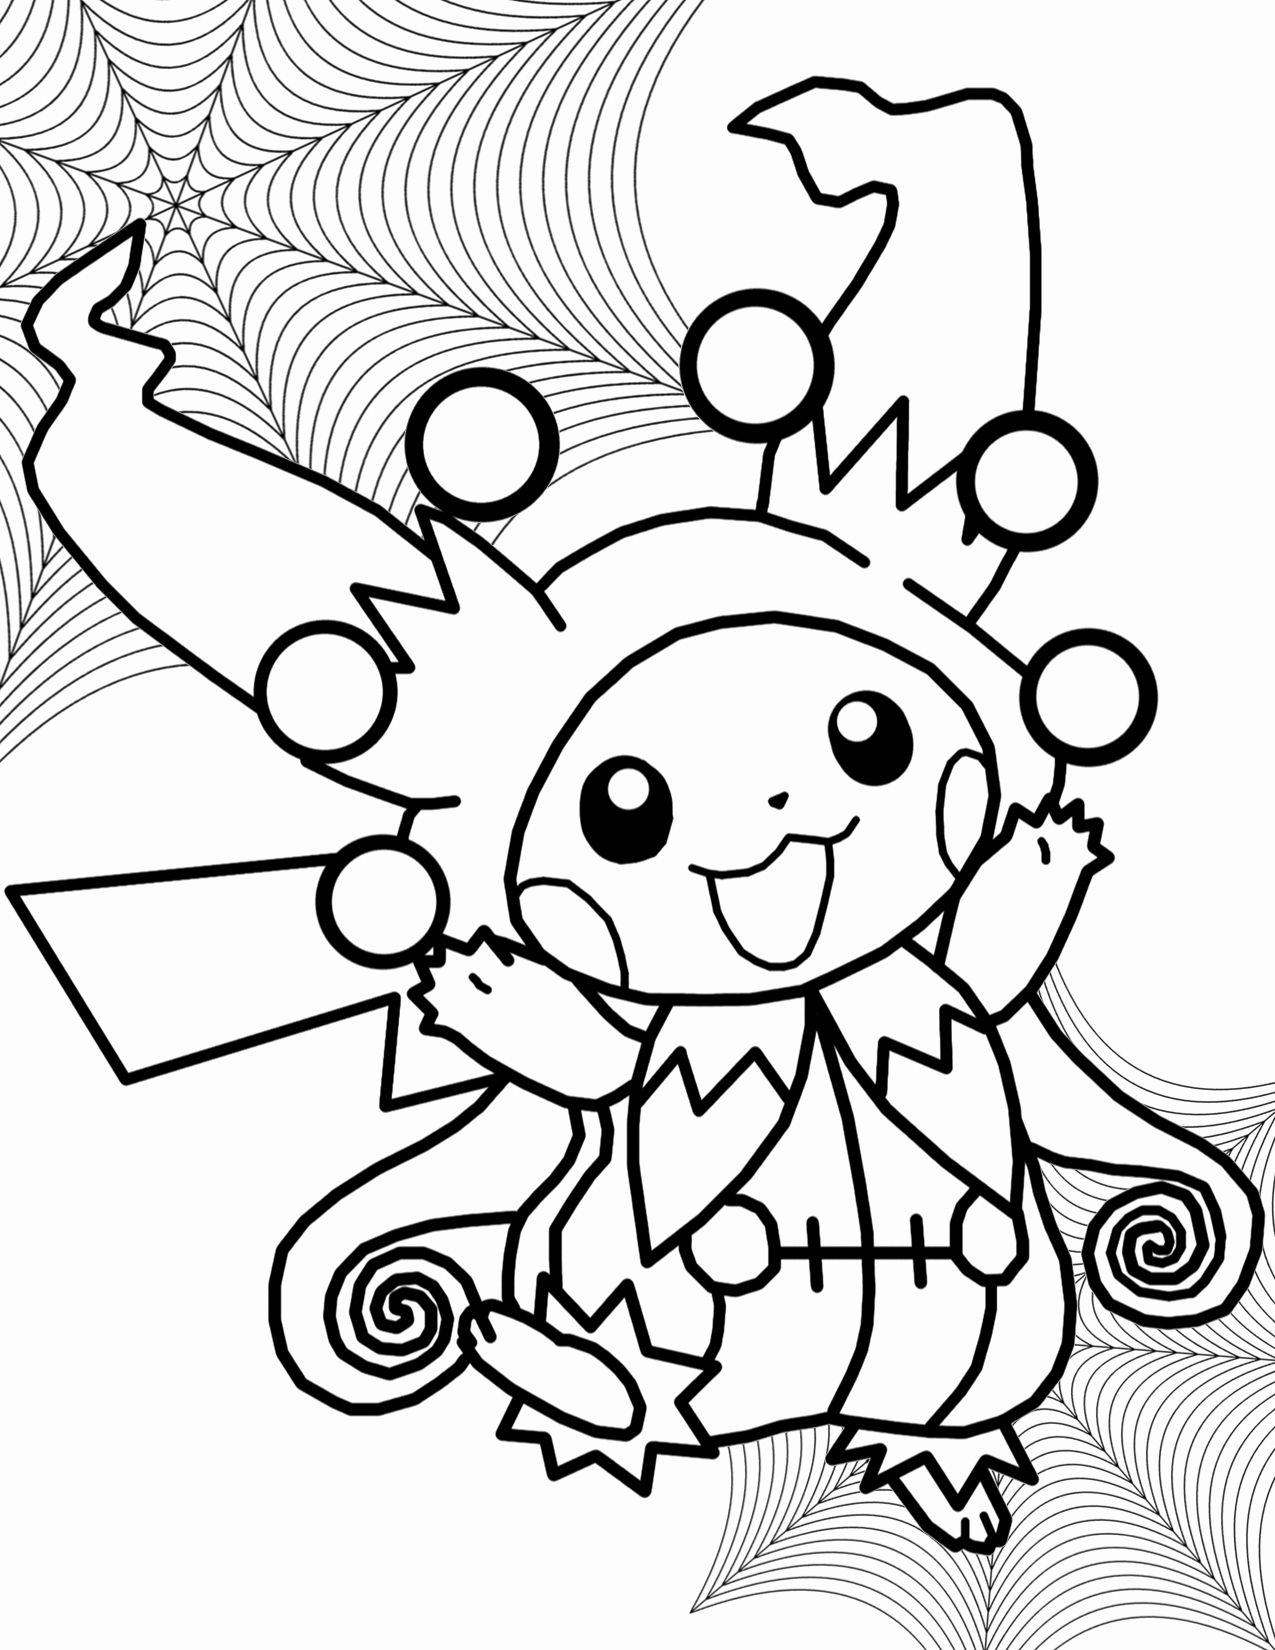 Pokemon Coloring Pages Kids in 2020 Pokemon coloring